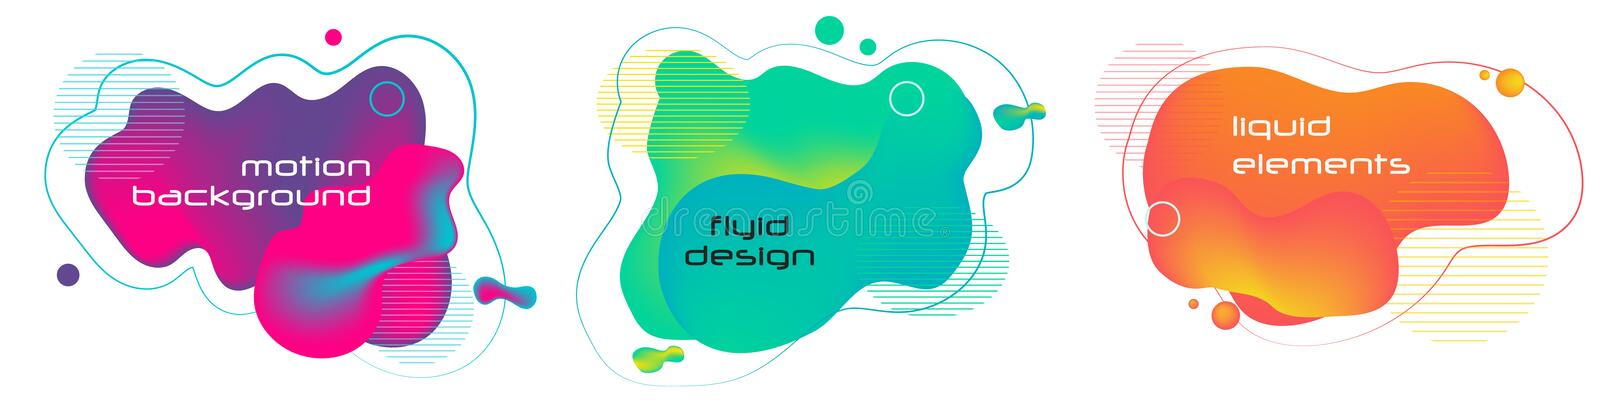 Set of liquid color abstract geometric shapes. Fluid gradient elements for minimal banner, logo, social post. Futuristic trendy dy royalty free illustration